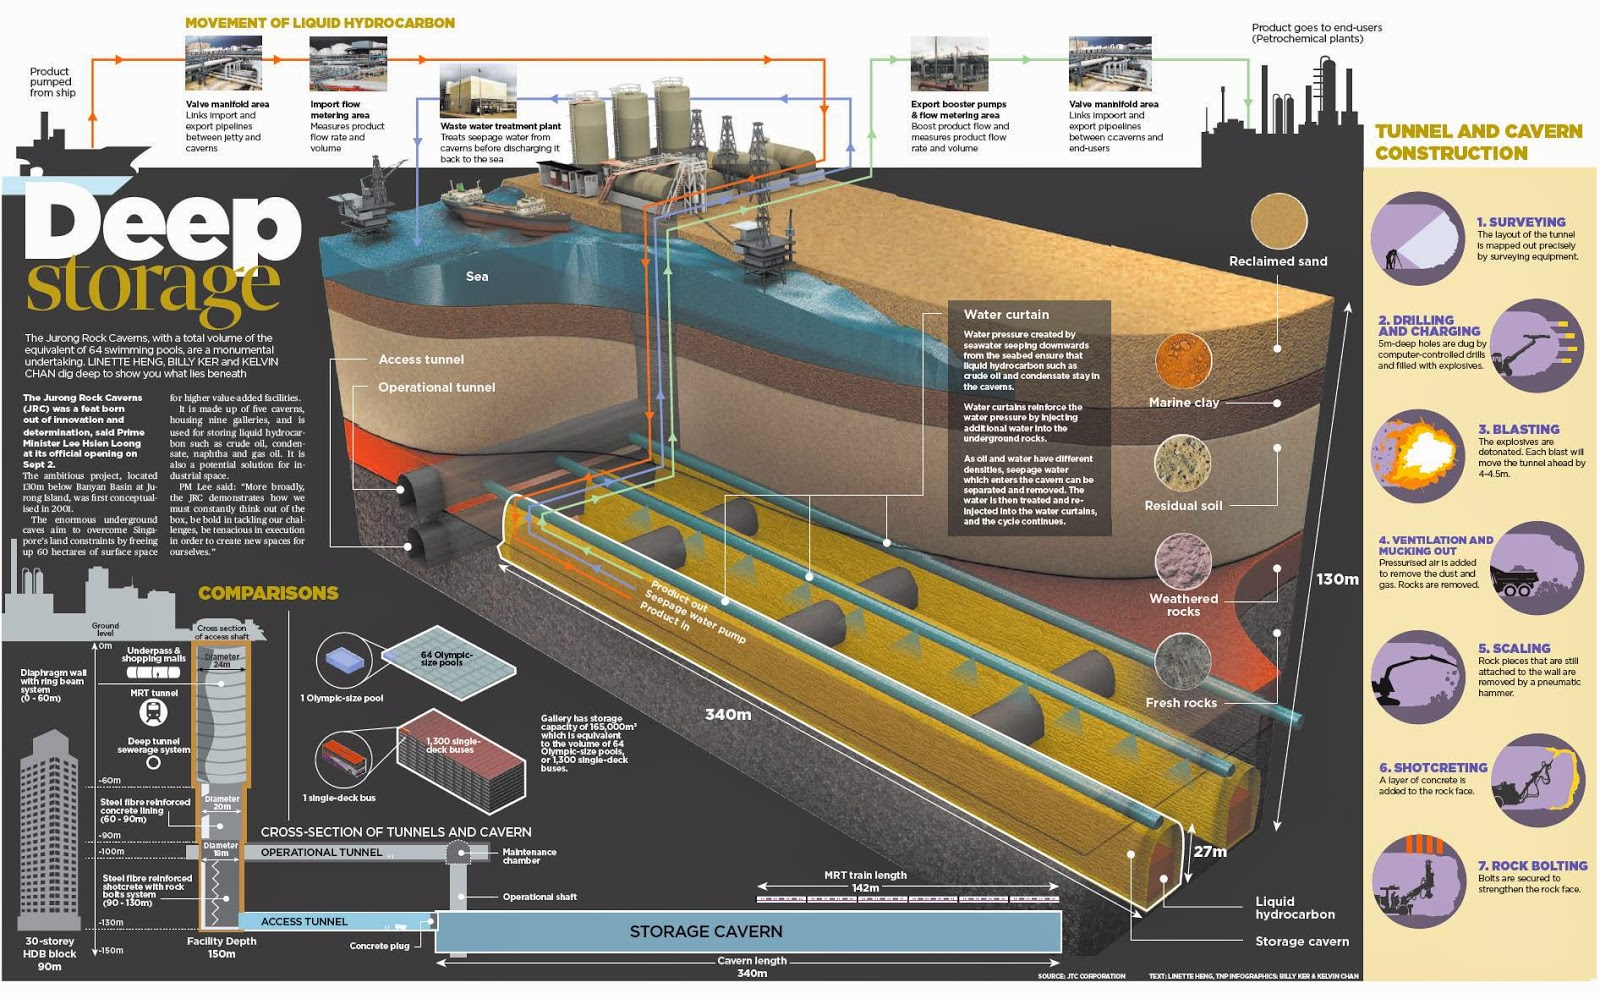 3d Plant Diagram Electrical Wiring Pics Photos Cell With If Only Singaporeans Stopped To Think Jurong Rock Caverns Project Thermal Power